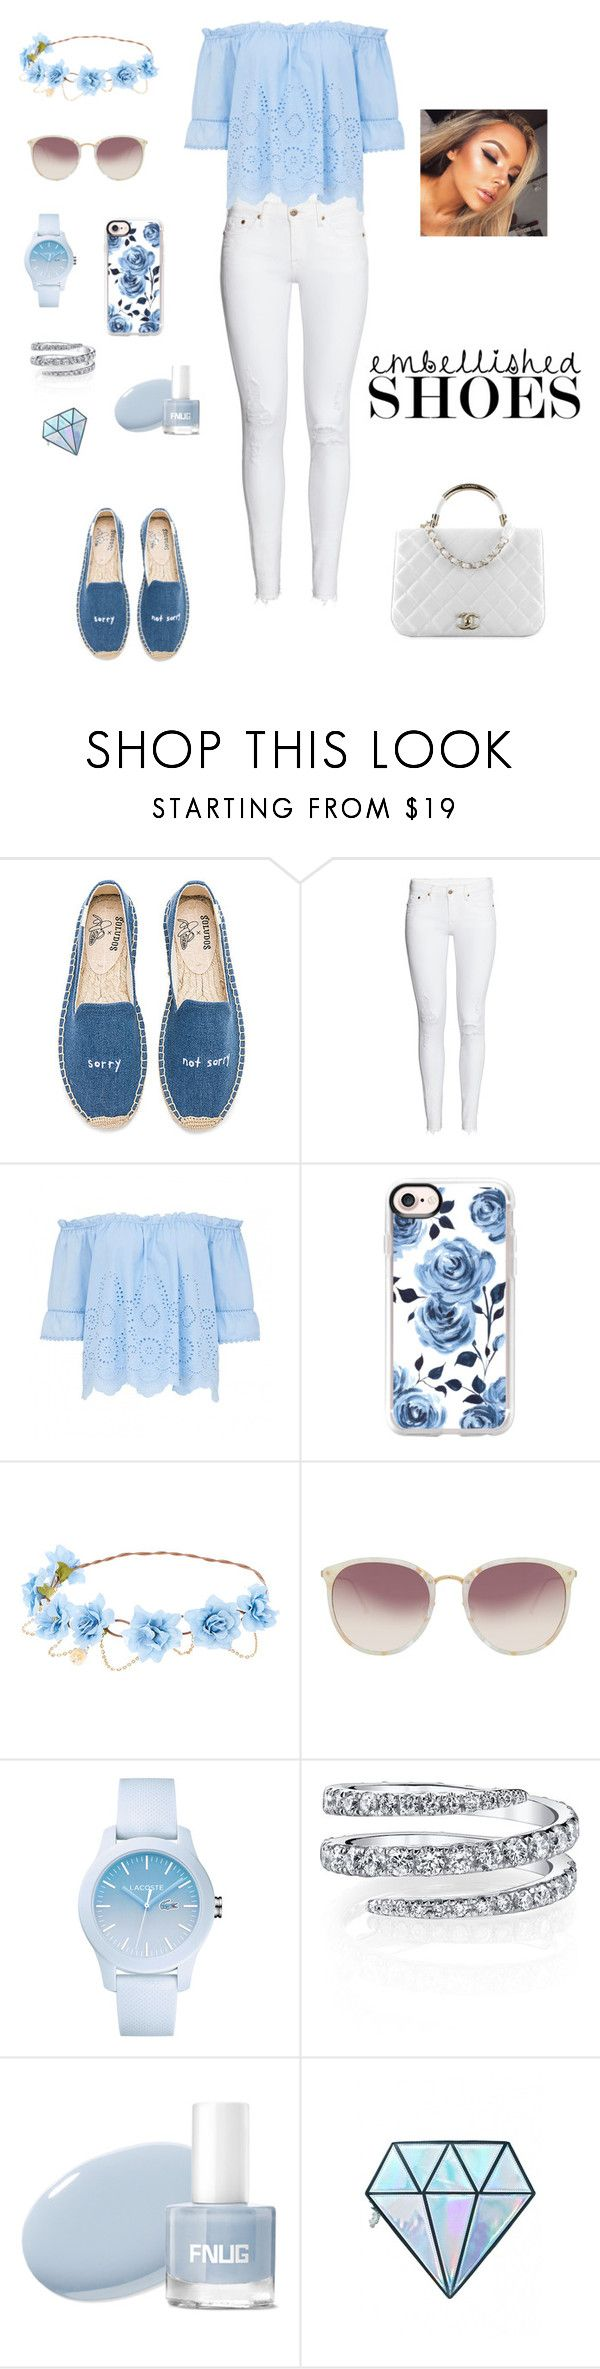 """Untitled #273"" by natalyholly on Polyvore featuring Soludos, Chanel, Casetify, Linda Farrow, Lacoste and Unicorn Lashes"